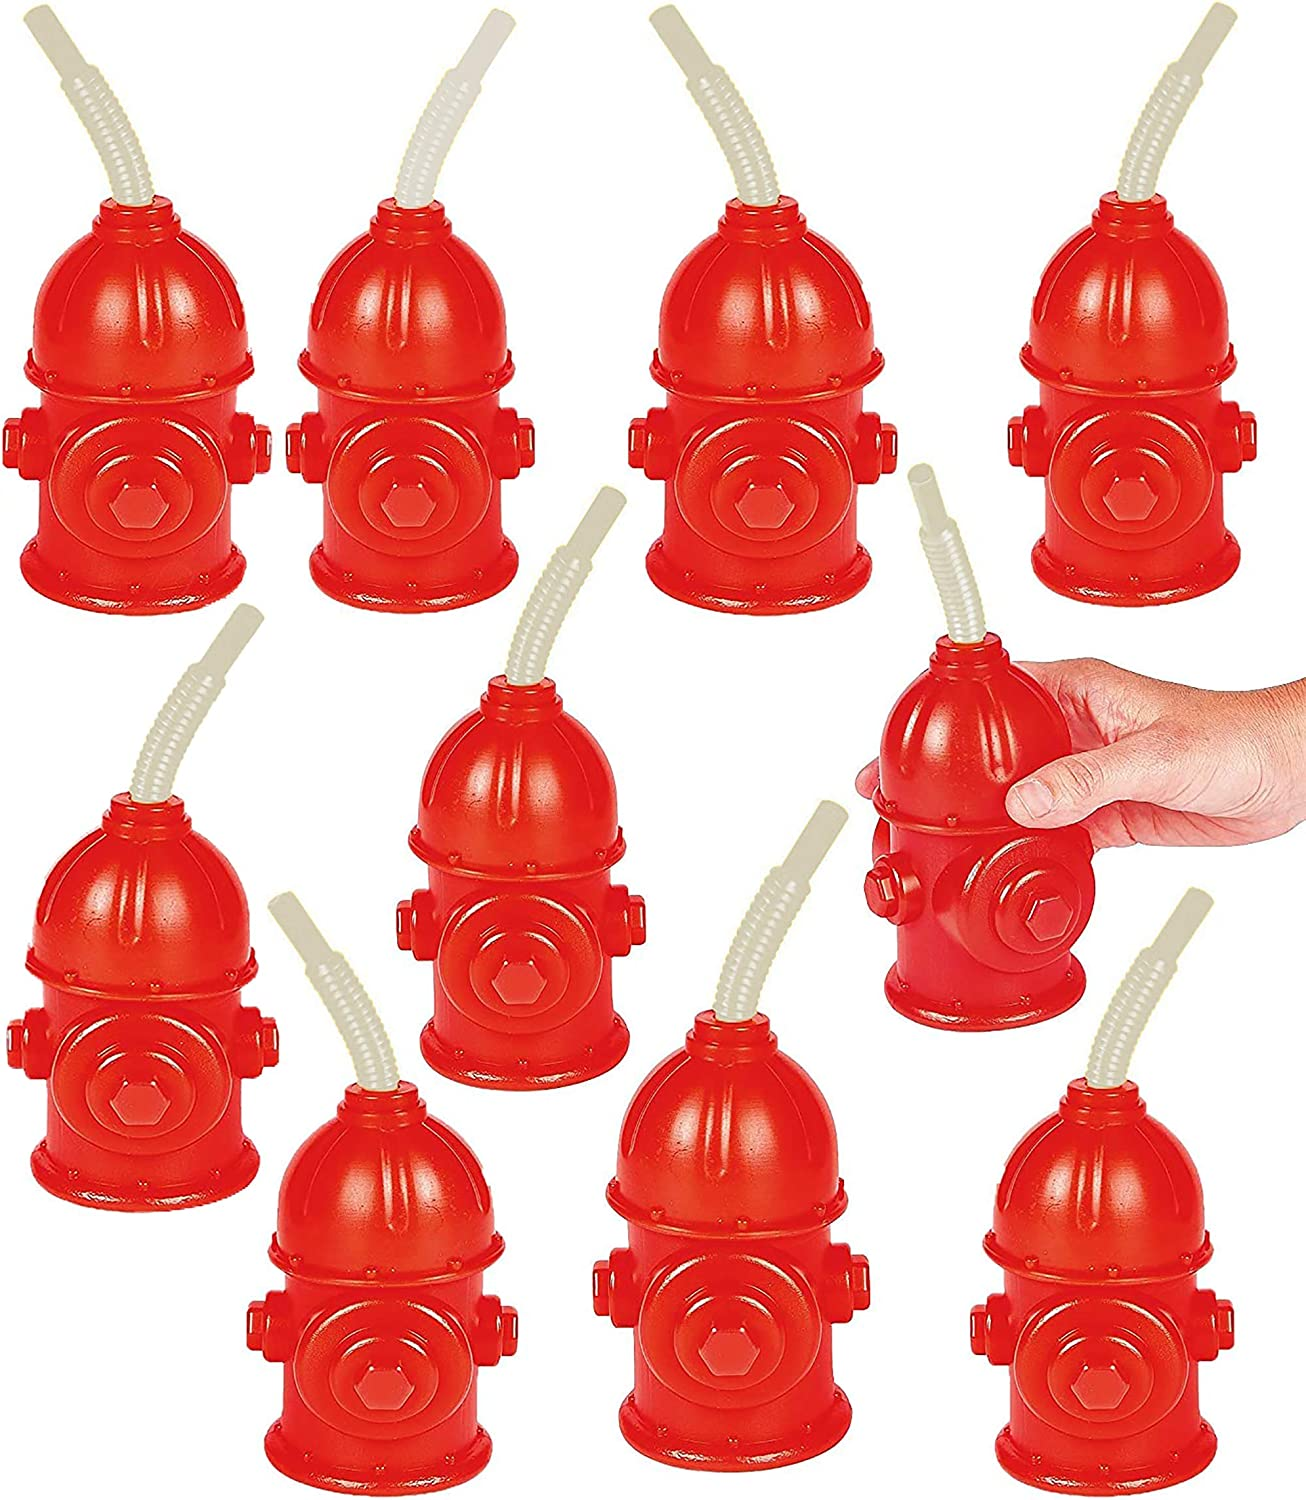 Fire Hydrant Straw Cups With Lids (10 Pack) 12oz - for Paw Dog Patrol Party Supplies, Firefighter Birthday Party Favors, Firetruck & Fireman Party Décor, Rescue Dog Marshall Party by 4E's Novelty